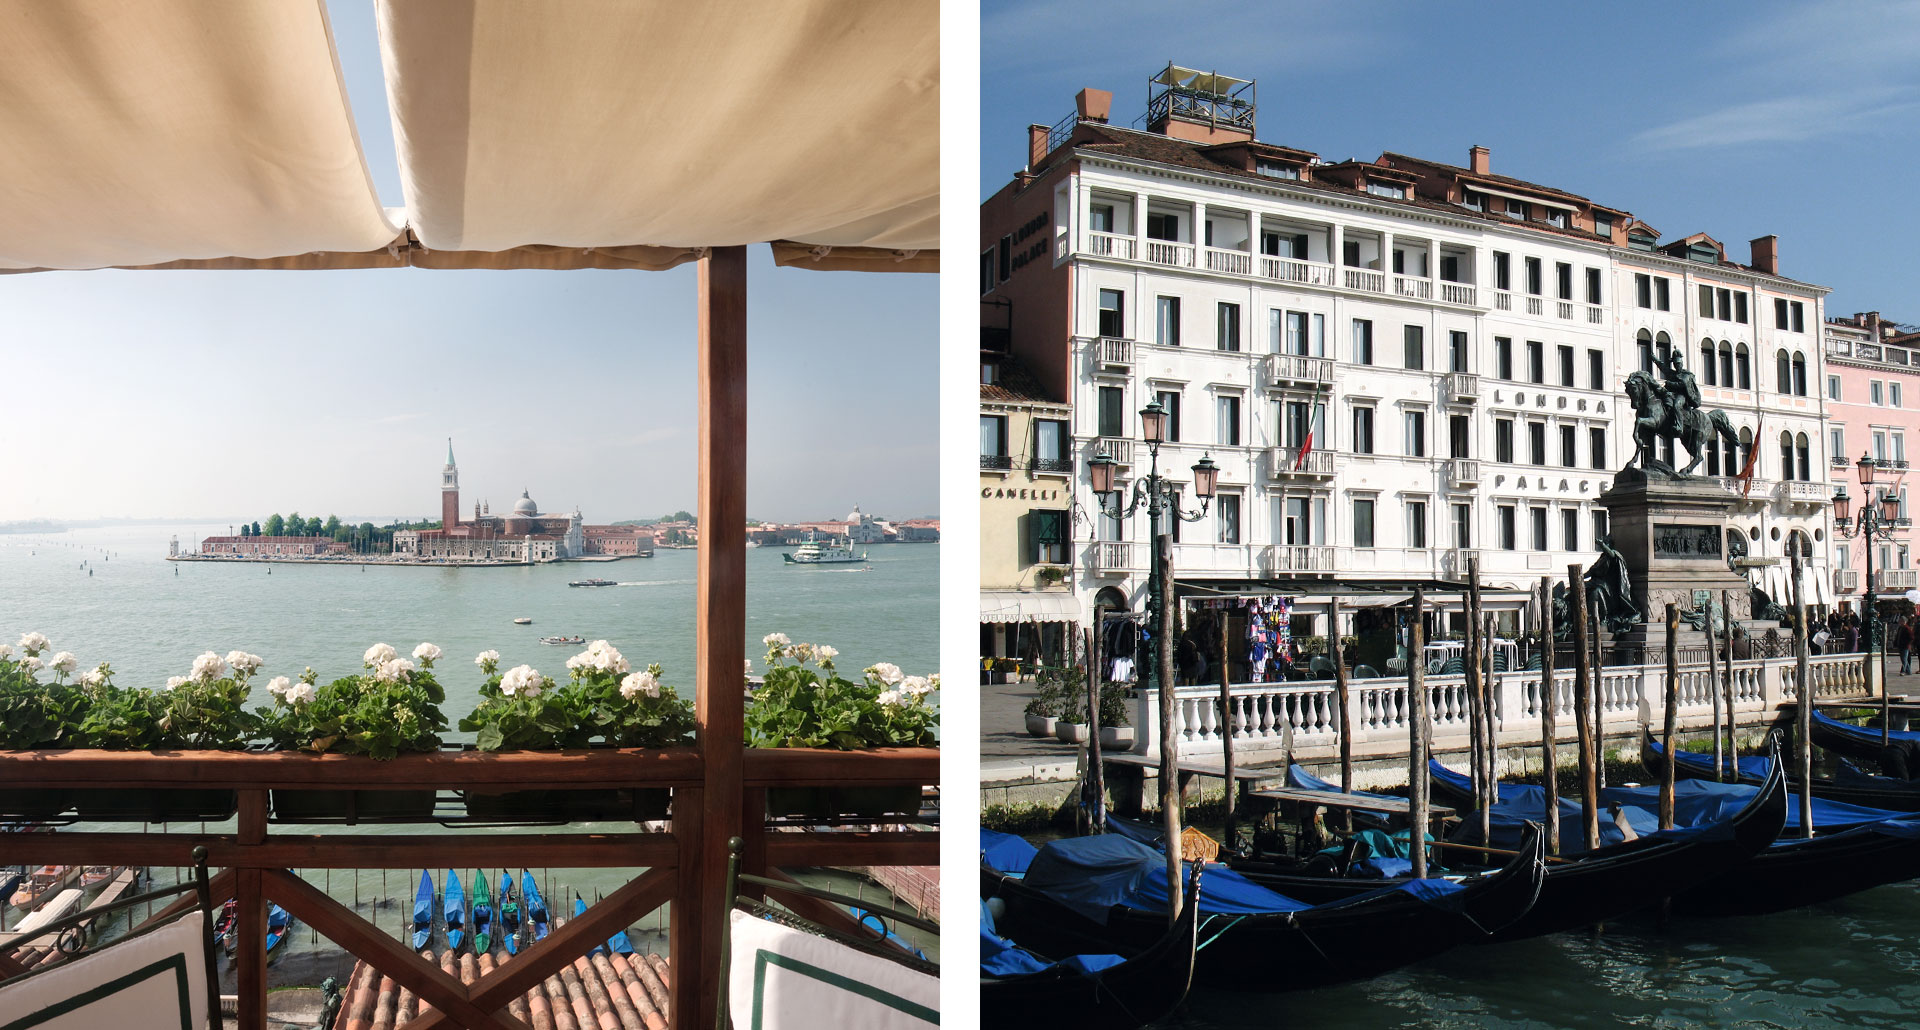 Hotel Londra Palace - boutique hotel in Venice